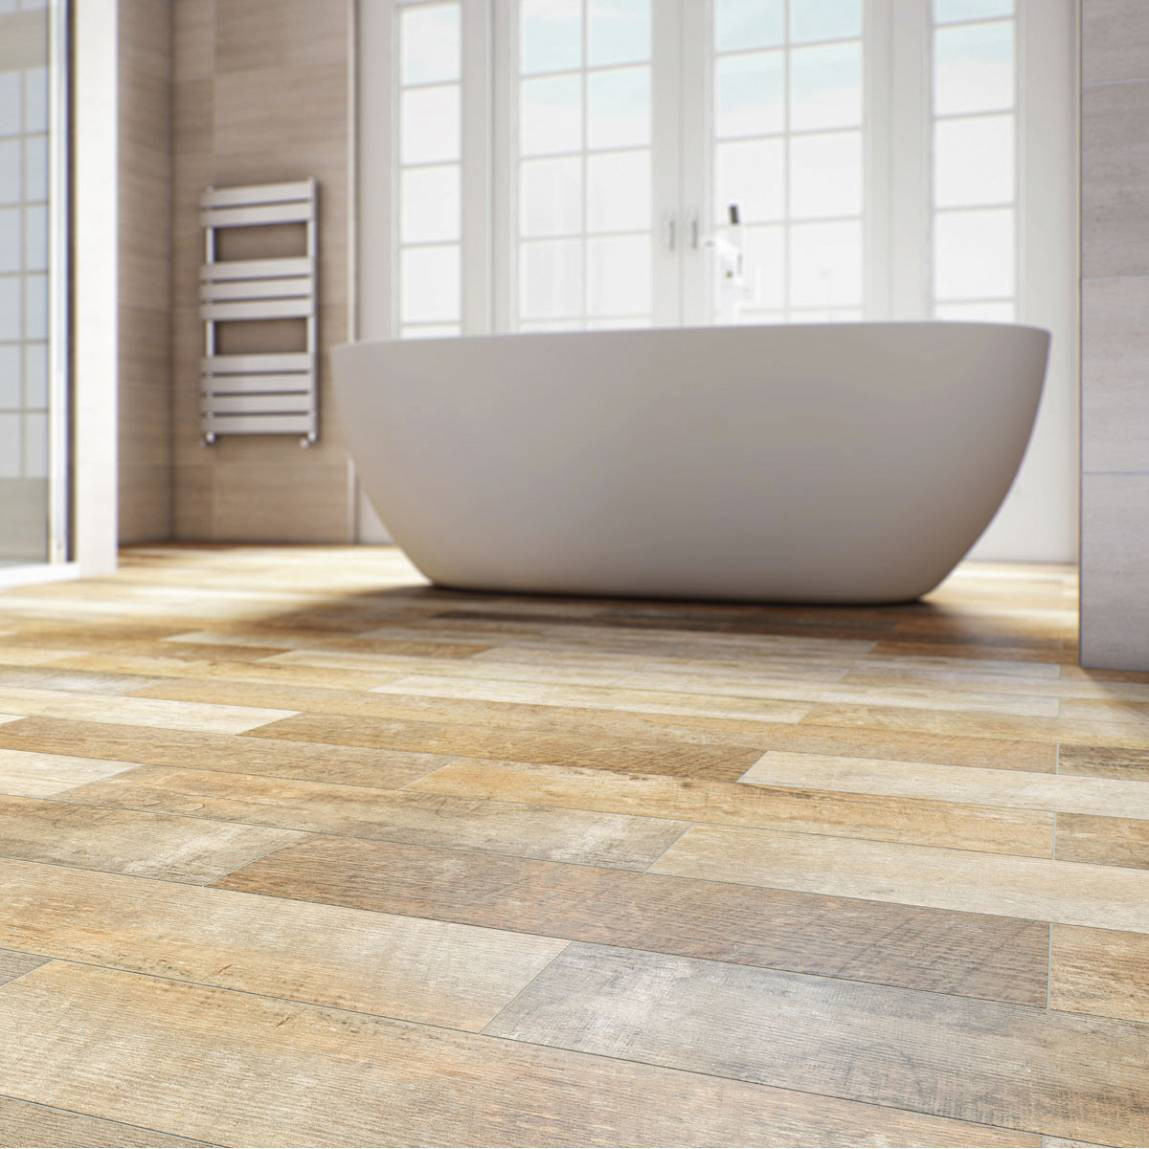 Wooden Bathroom Tiles: Choosing Bathroom Tiles